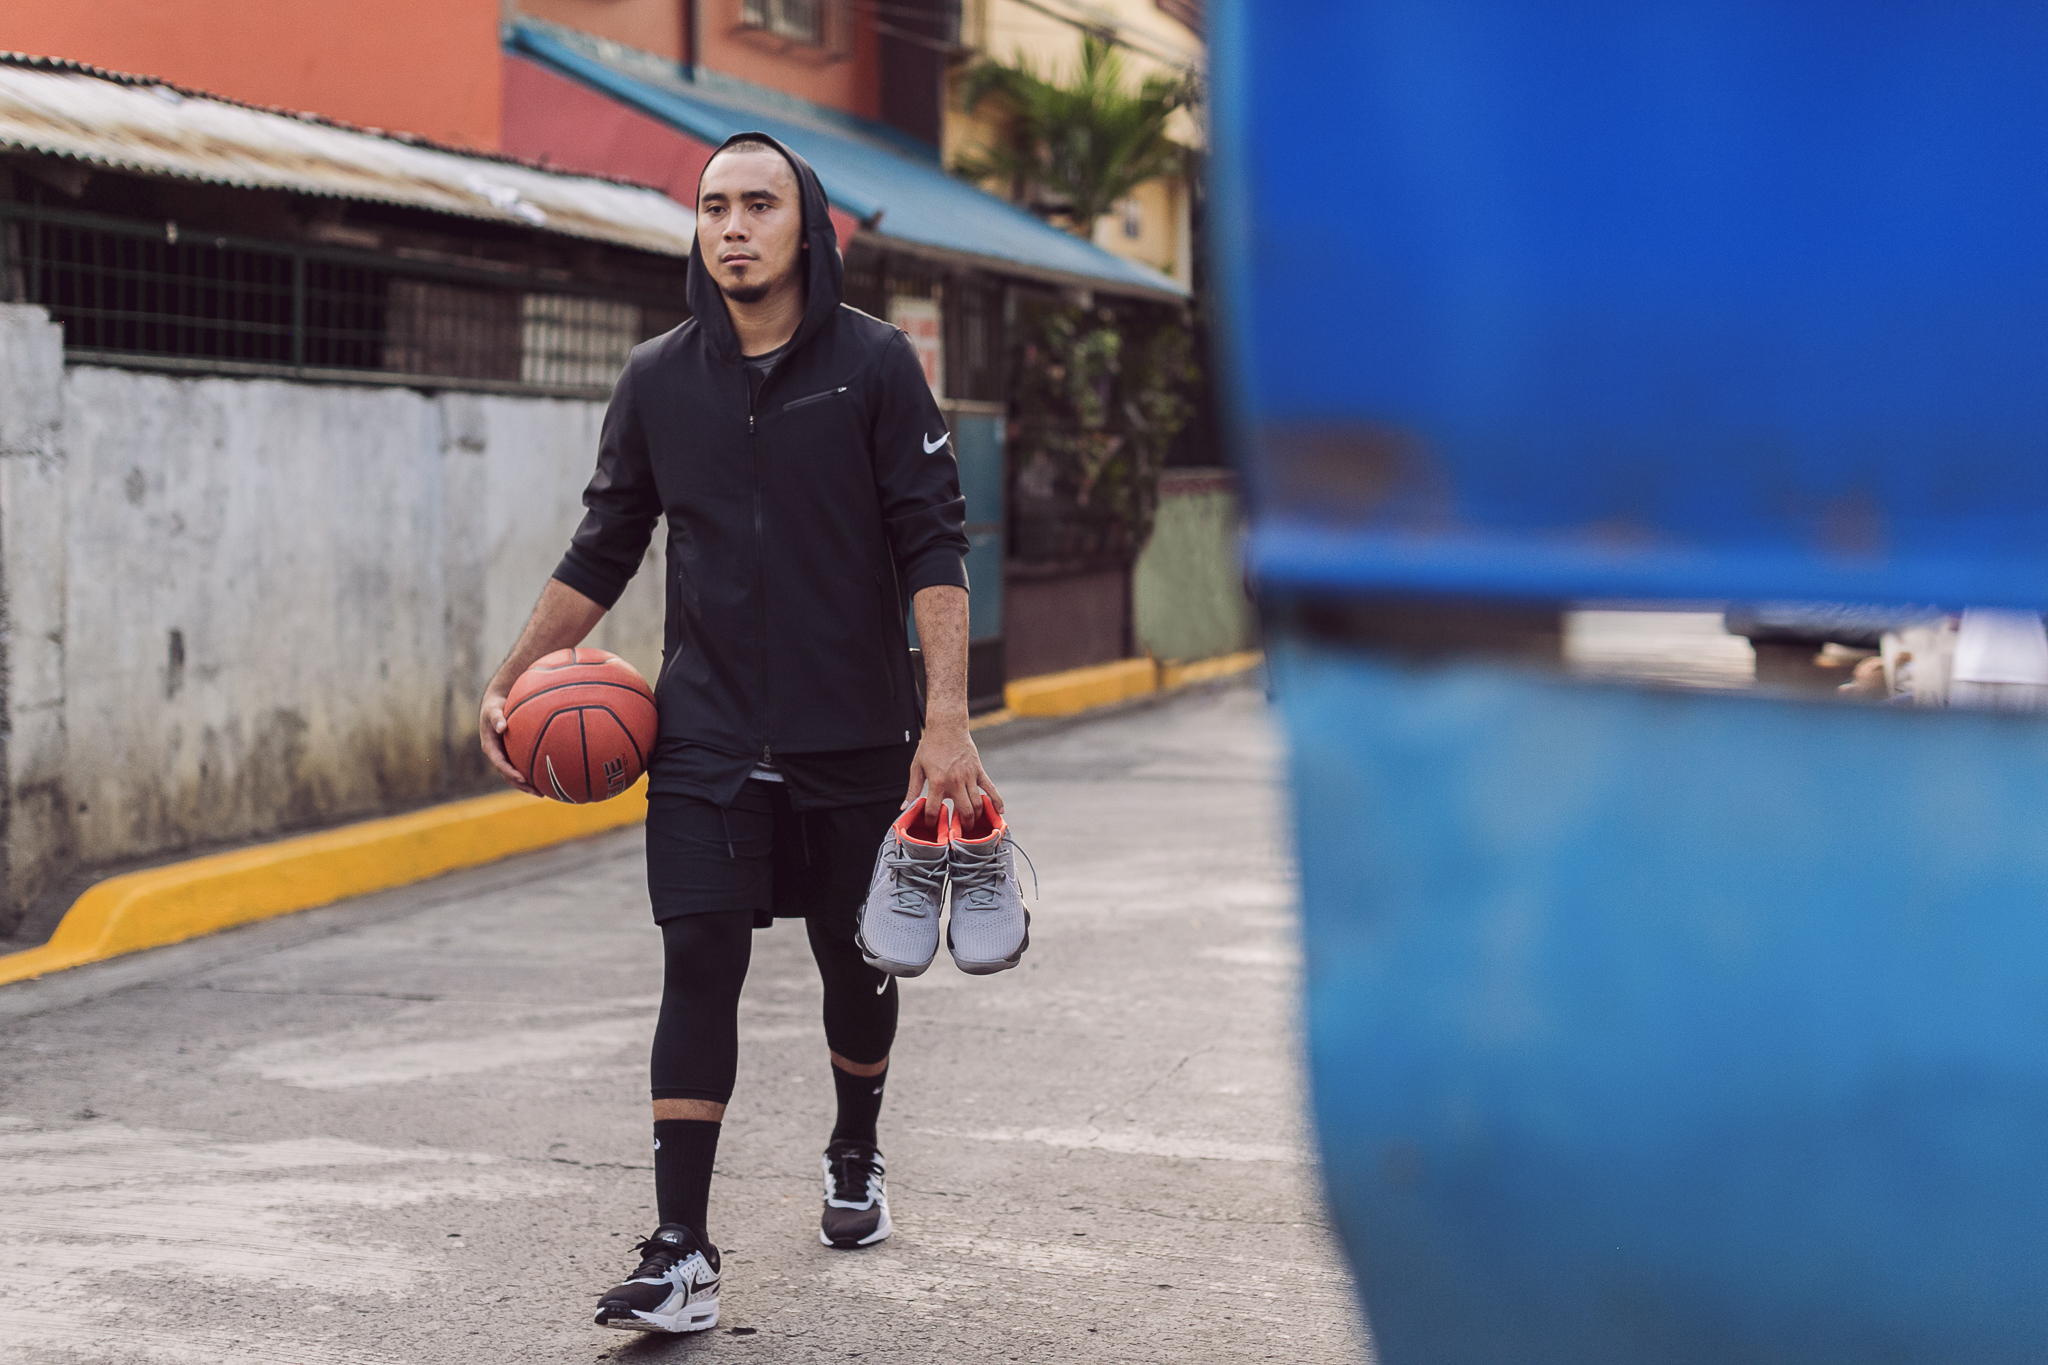 REPYOURCOURT | Rep the MNL: Paul Lee, Tondo and The Tenement